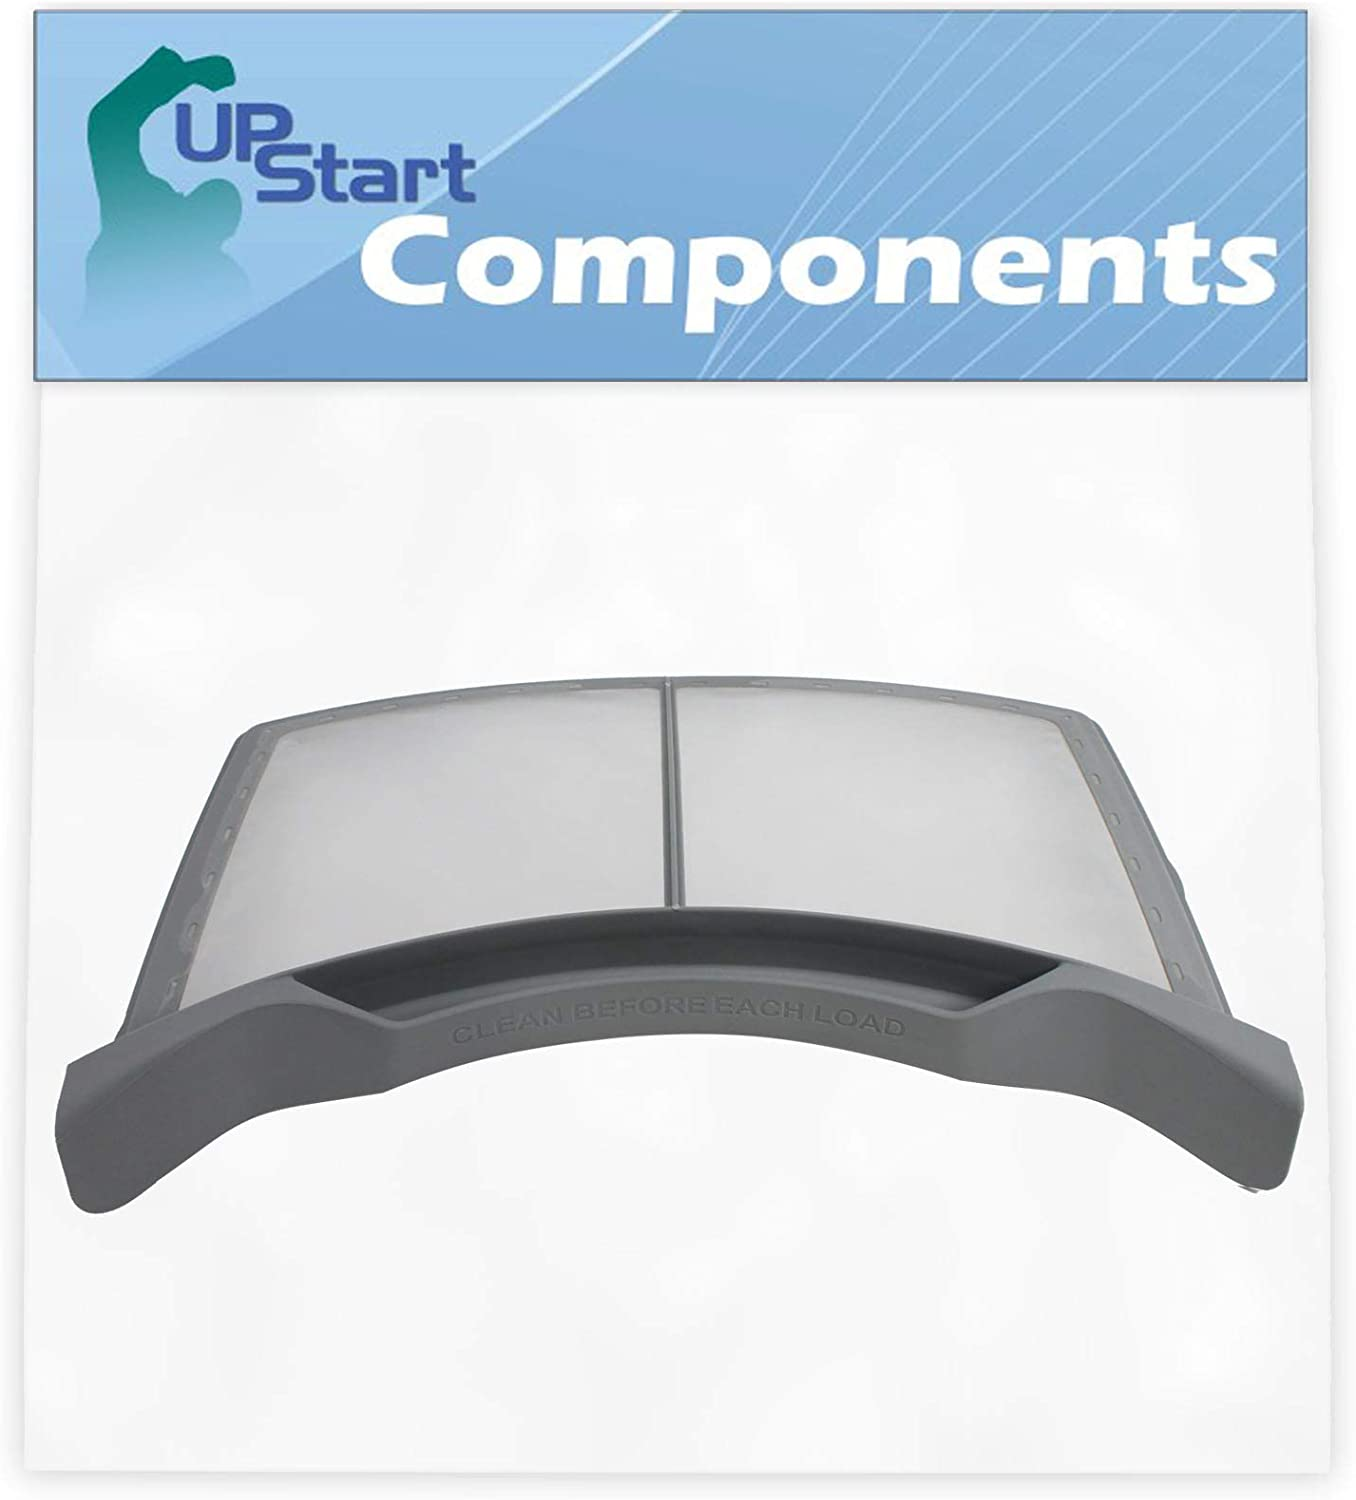 134793600 Dryer Lint Filter Replacement for Part Number PS2349312 - Compatible with 134793600 Lint Screen Trap Catcher